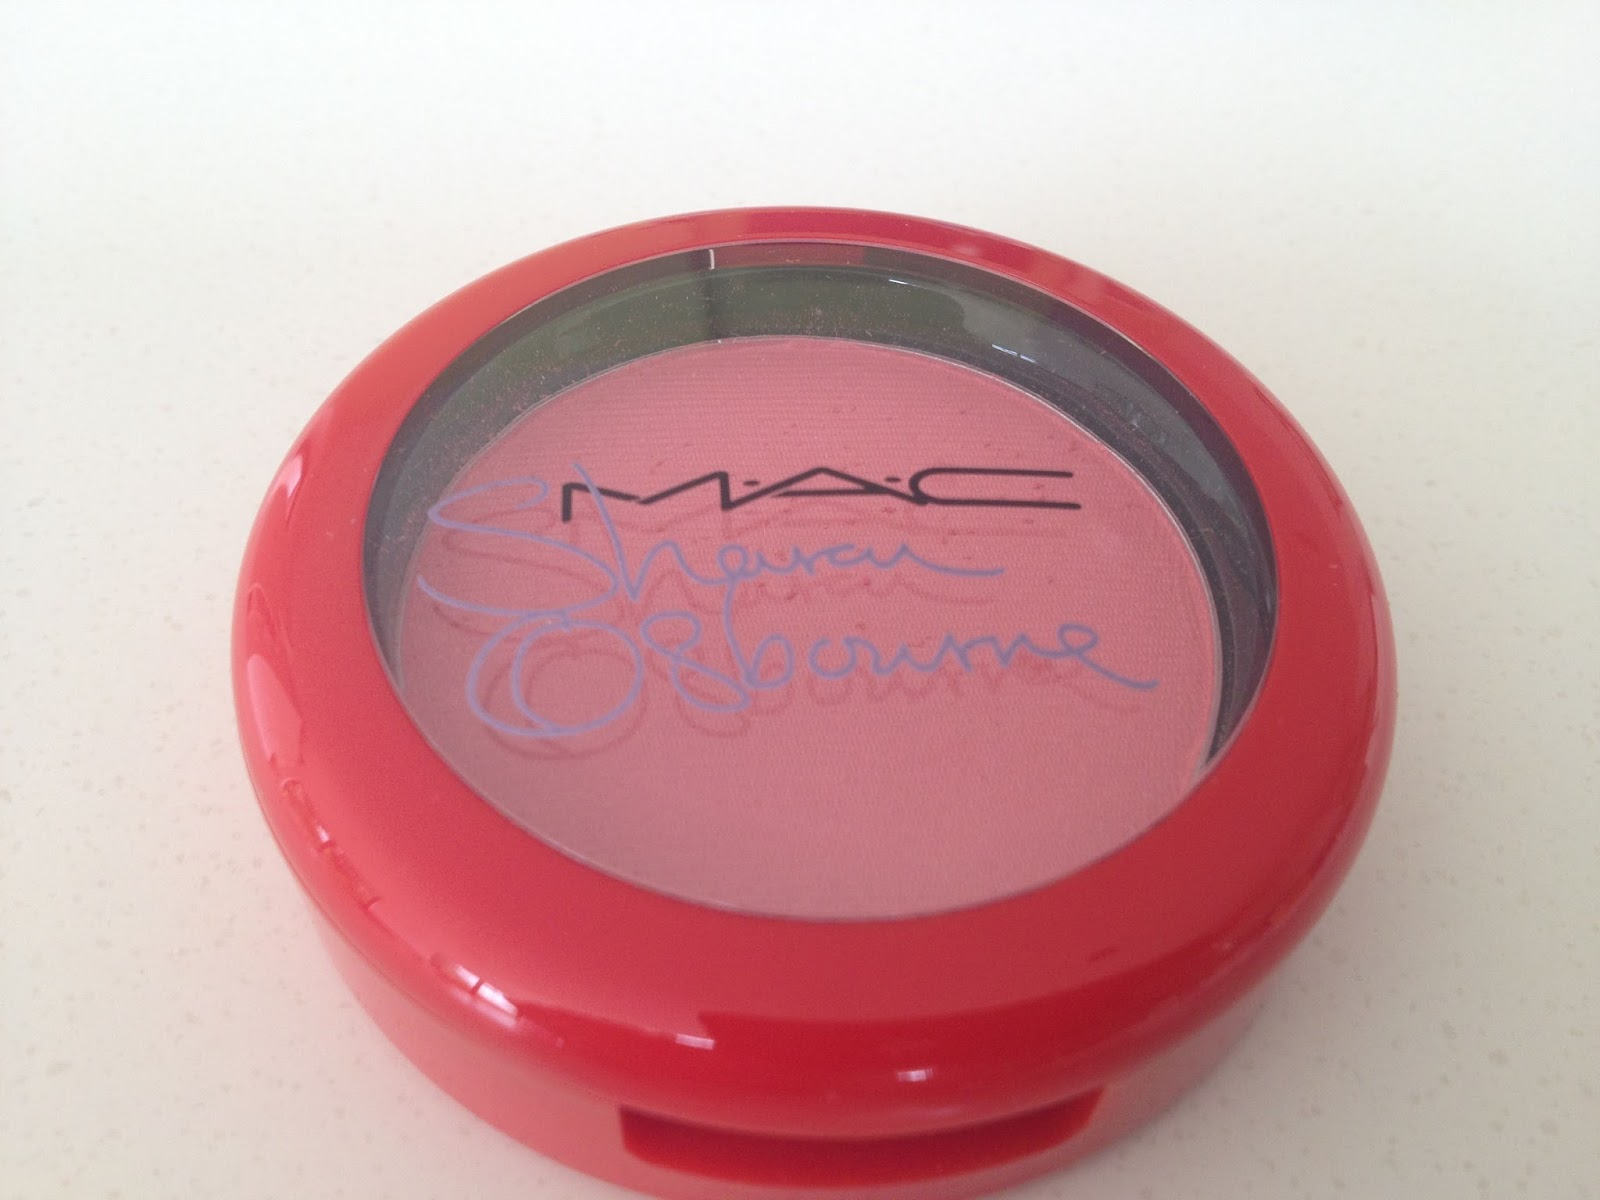 MAC Sharon Osbourne Peaches & Cream Powder Blush packaging